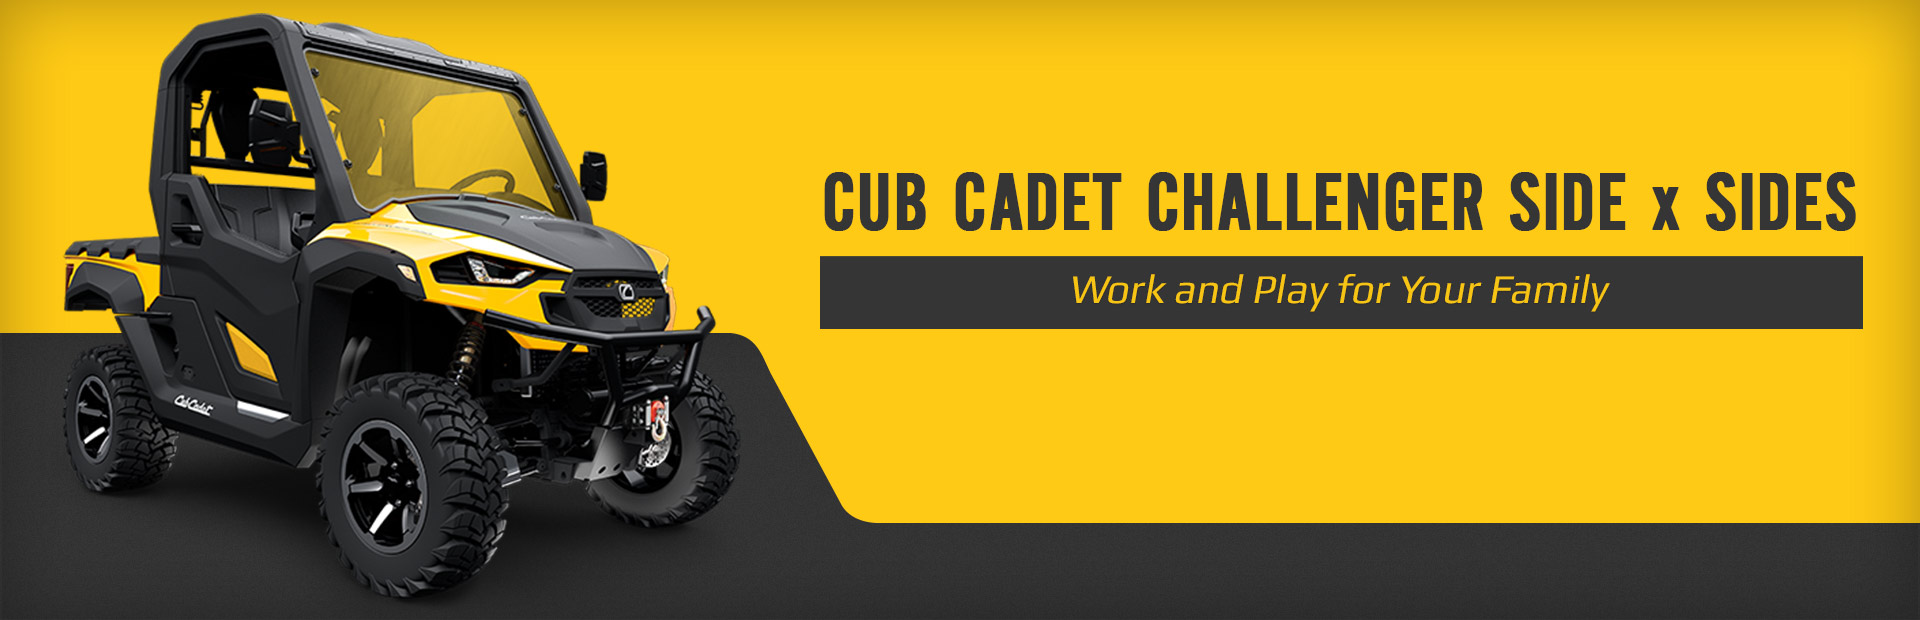 Cub Cadet Challenger Side x Sides: Click here to view the models.